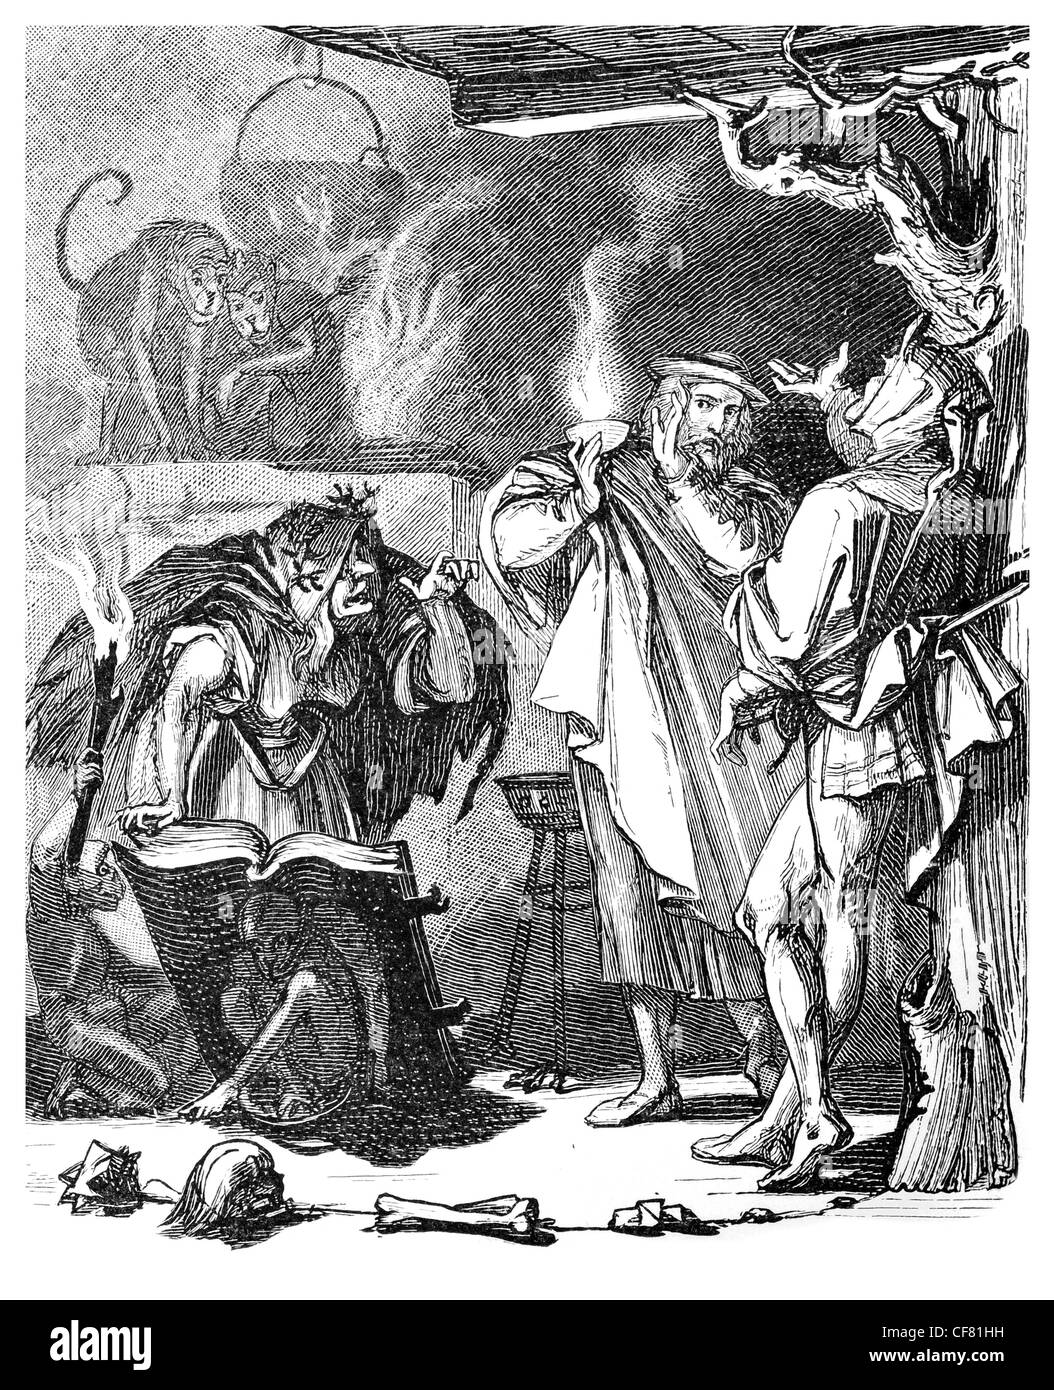 character analysis of gretchen in johann goethes play faust Get everything you need to know about mephistopheles in faust analysis, related quotes, timeline  faust by johann wolfgang von goethe upgrade to a + download this lit guide (pdf).